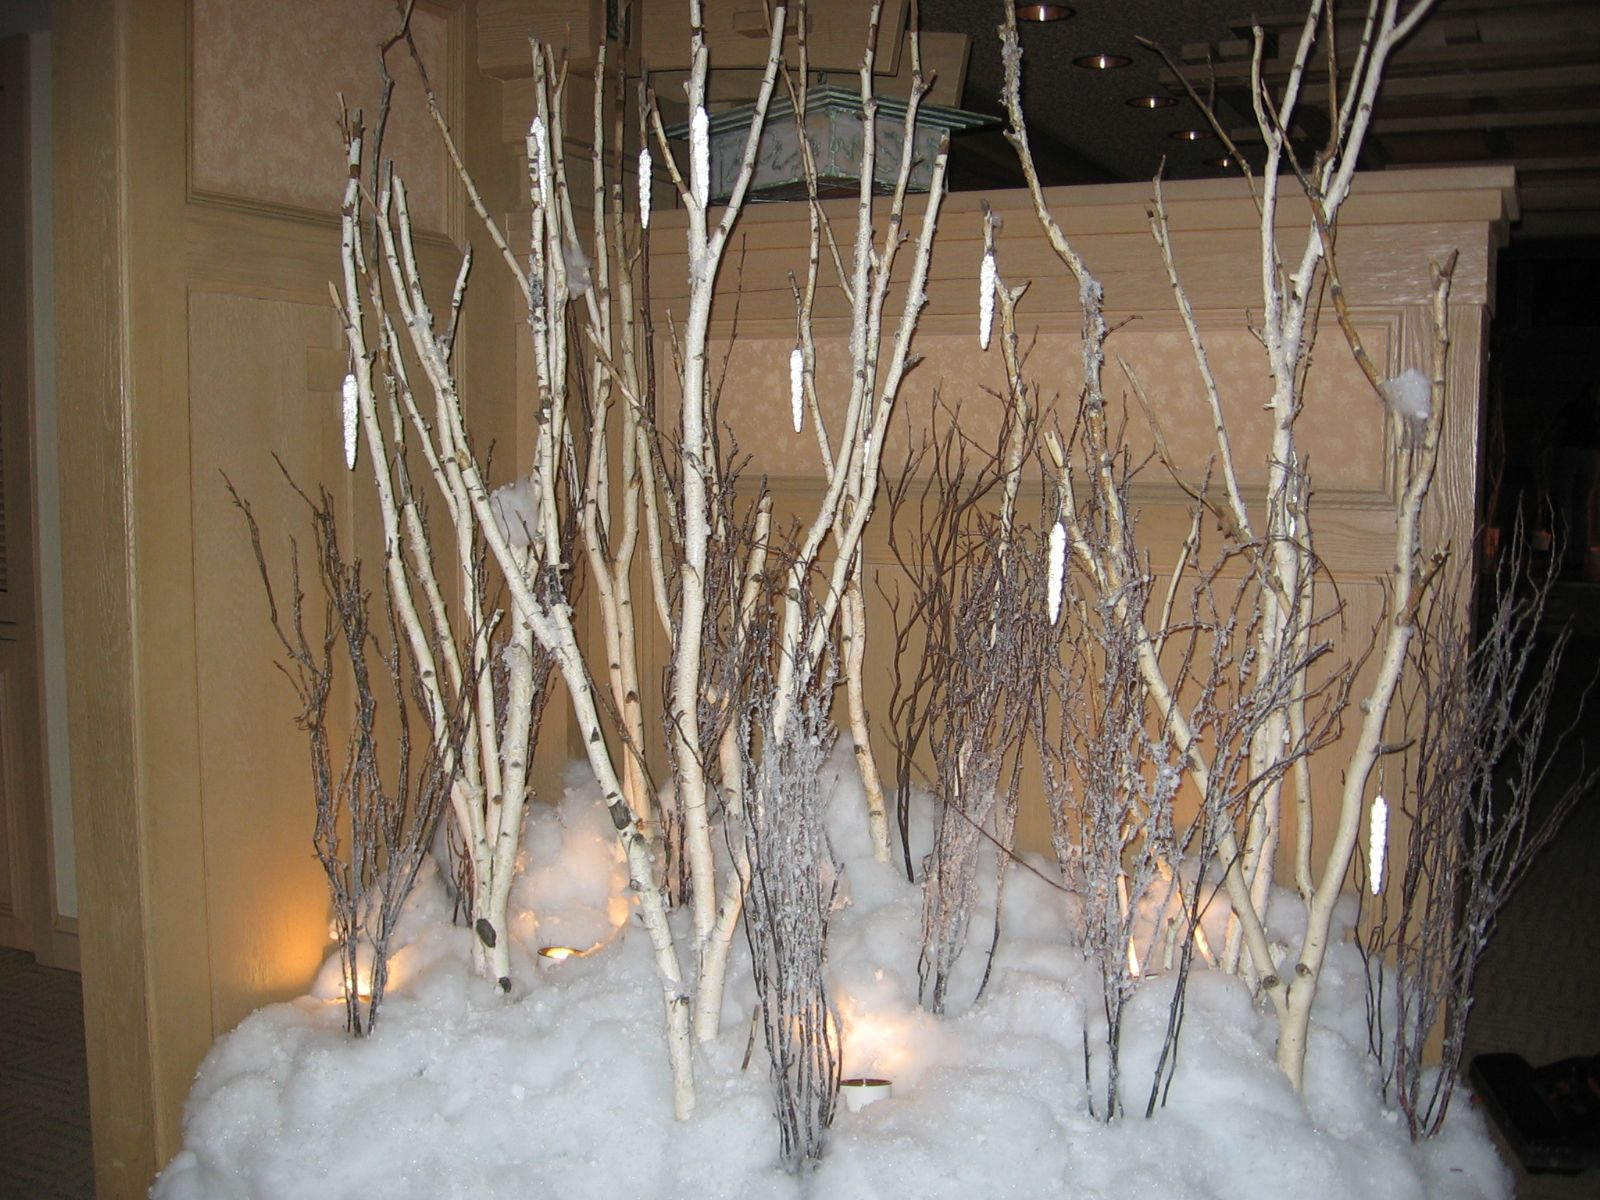 Centerpieces For Hospitality Birch Tree Grouping 003 Jpg 1 600 1 200 Pixels Birch Tree Wallpaper Christmas Props Birch Christmas Tree